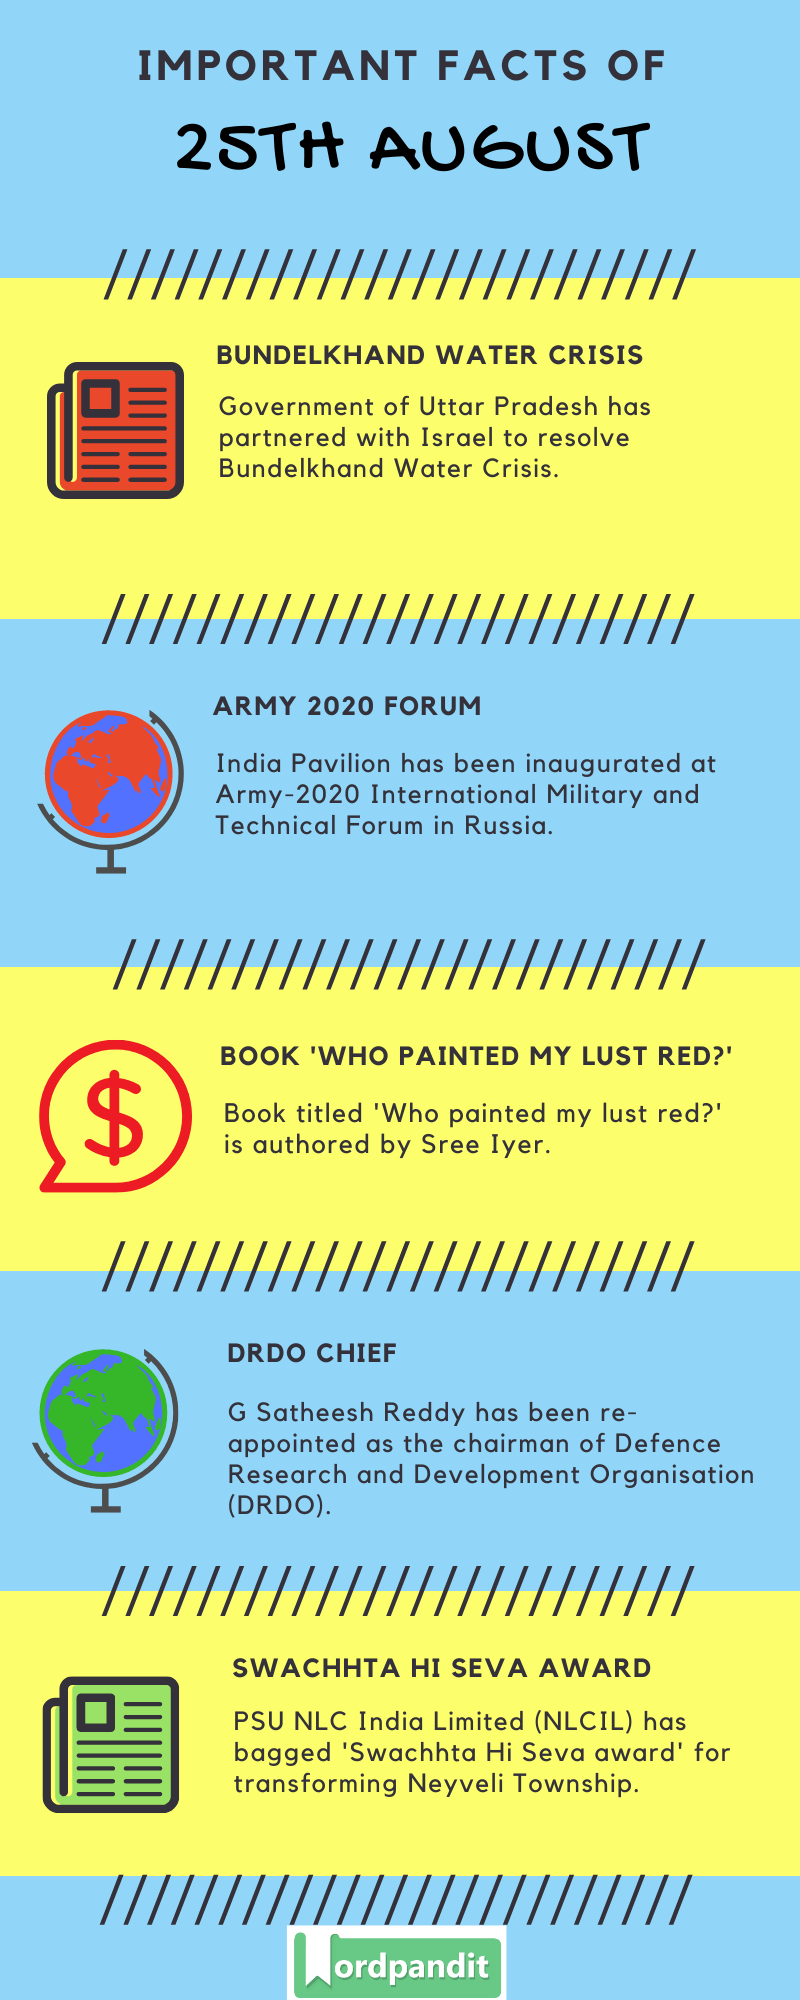 Daily Current Affairs 25th August 2020 Current Affairs Quiz 25th August 2020 Current Affairs Infographic